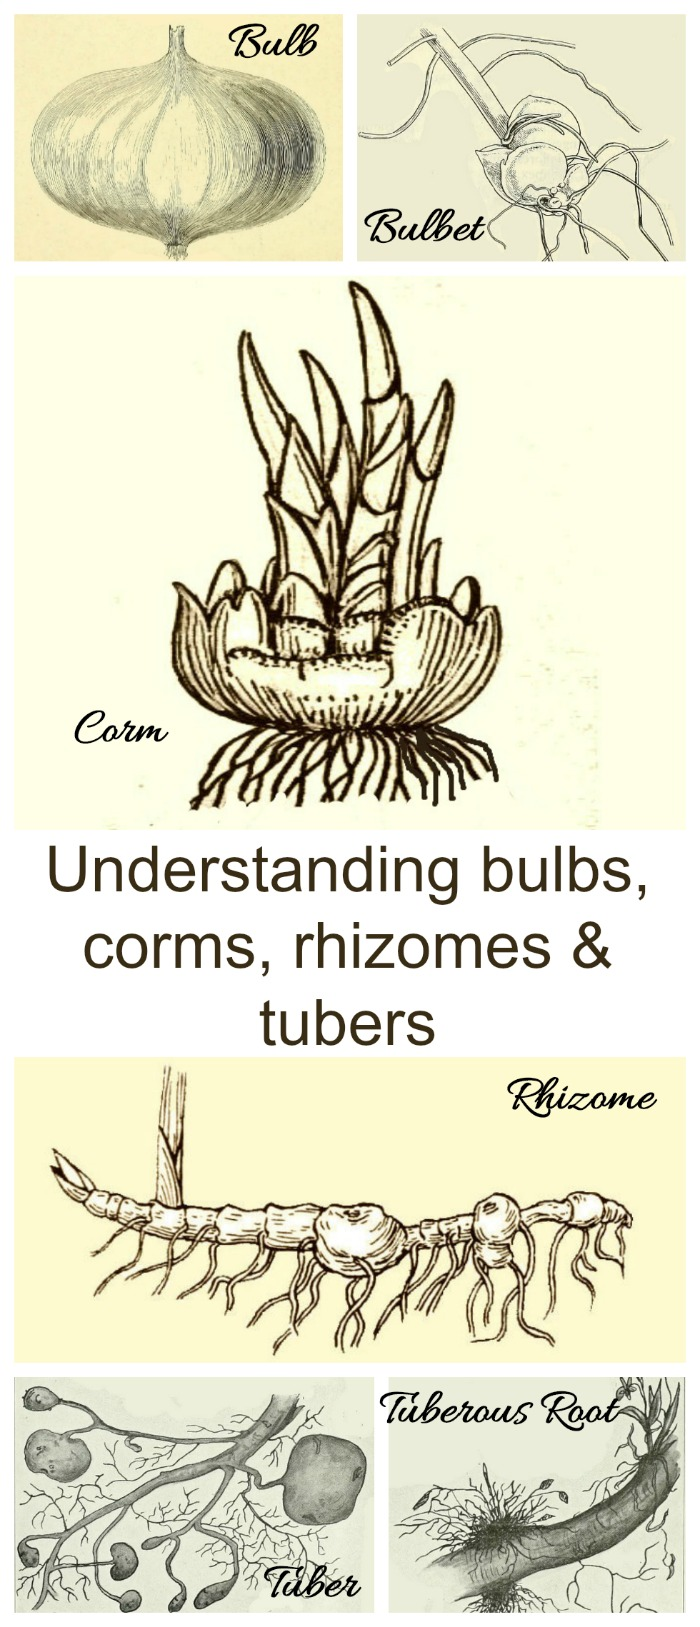 This guide to understanding flower bulb types has lots of useful information that explains the differences between bulbs corms rhizomes tubers as well as bulbets and tuberrous roots #flowerbulbs #understandingbulbs